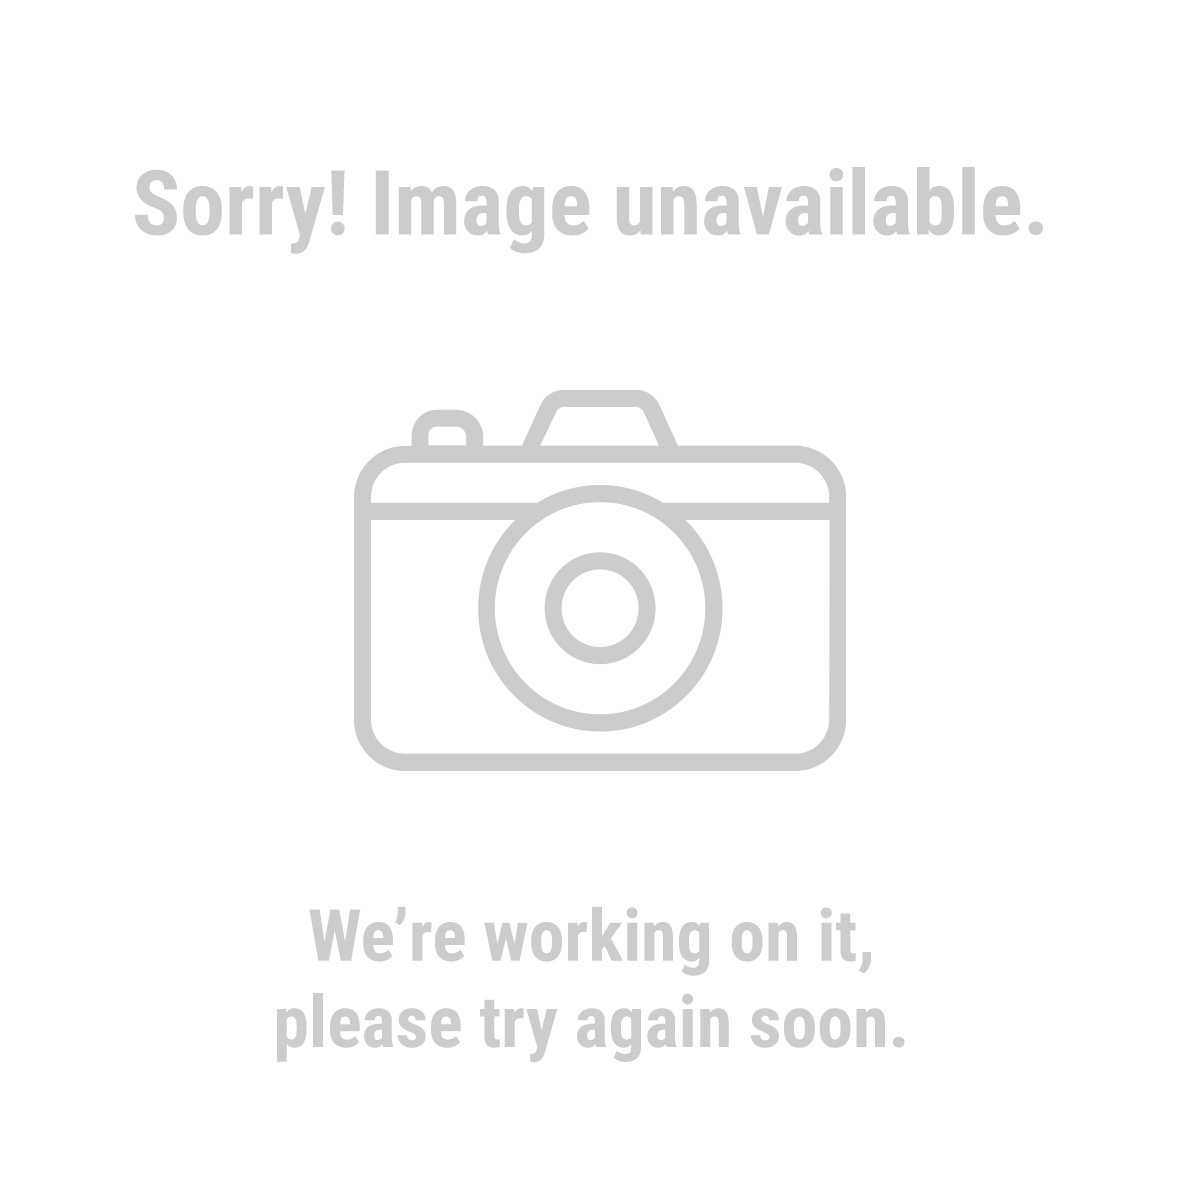 61573 10-5/8 in. Flat Free Hand Truck Tire with Zig-zag Tread